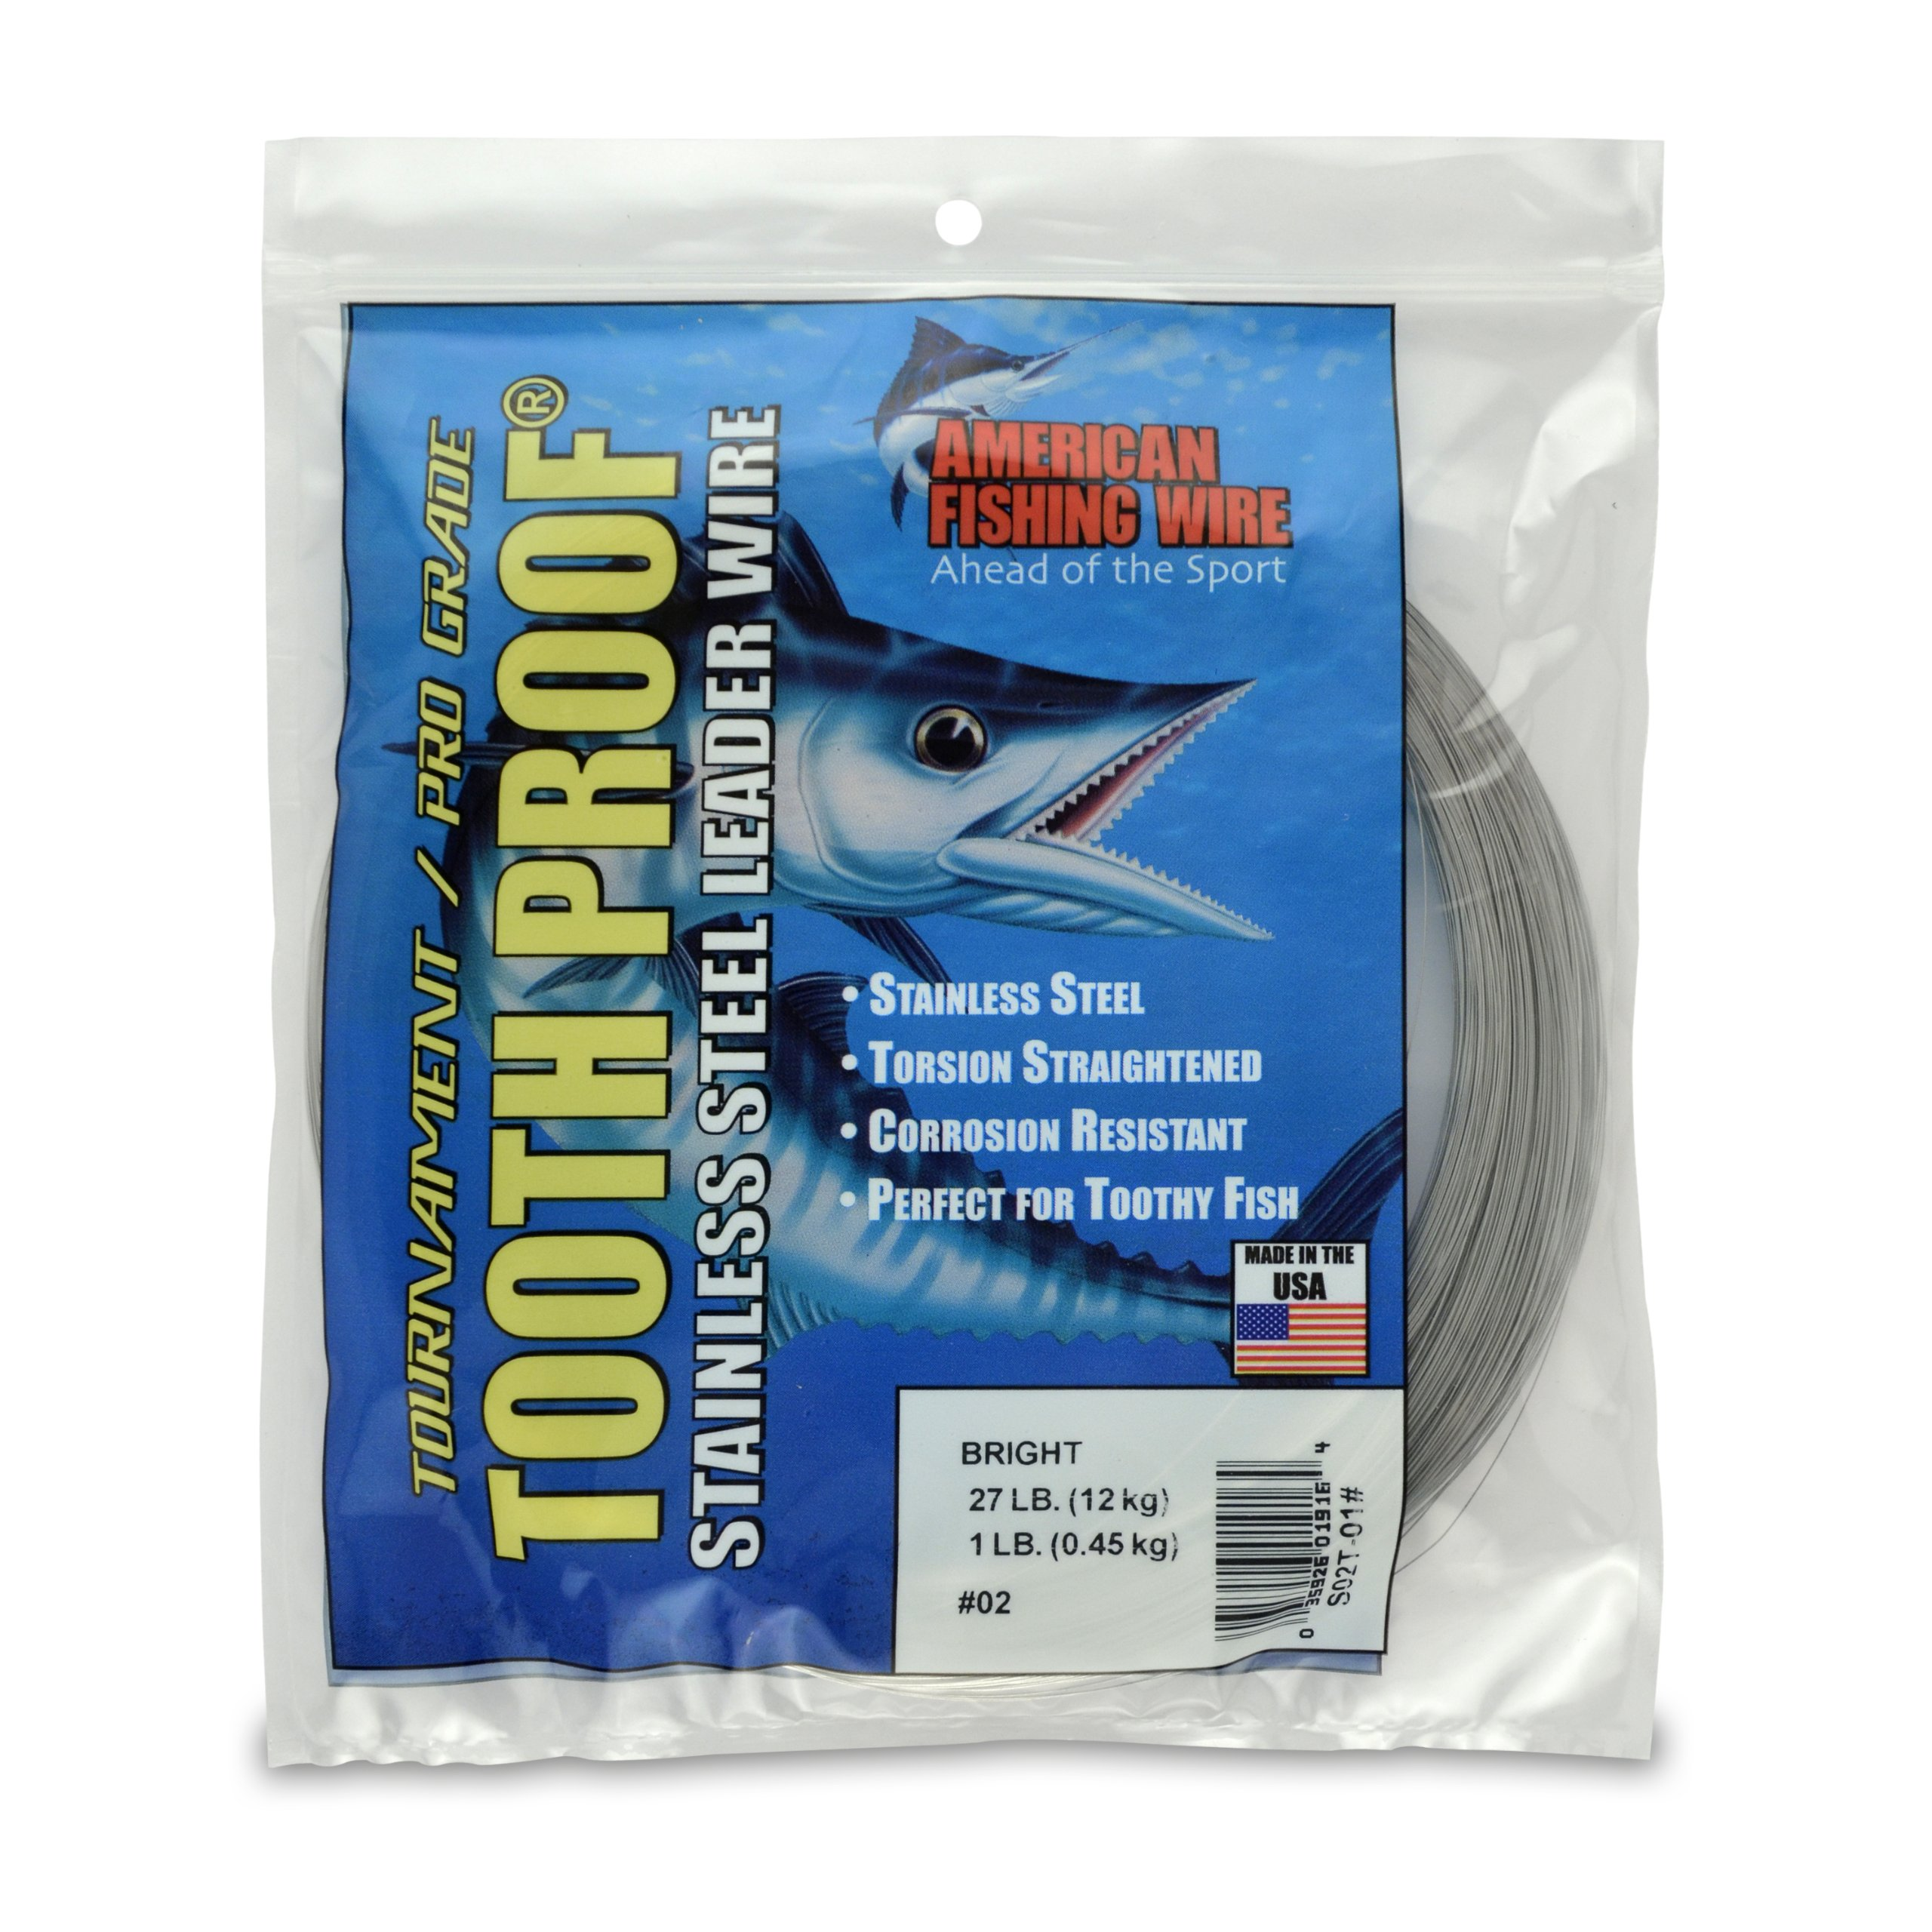 American Fishing Wire Tooth Proof Stainless Steel Single Strand Leader Wire, Size 2, Bright Color, 27 Pound Test, 1 Pound Coil